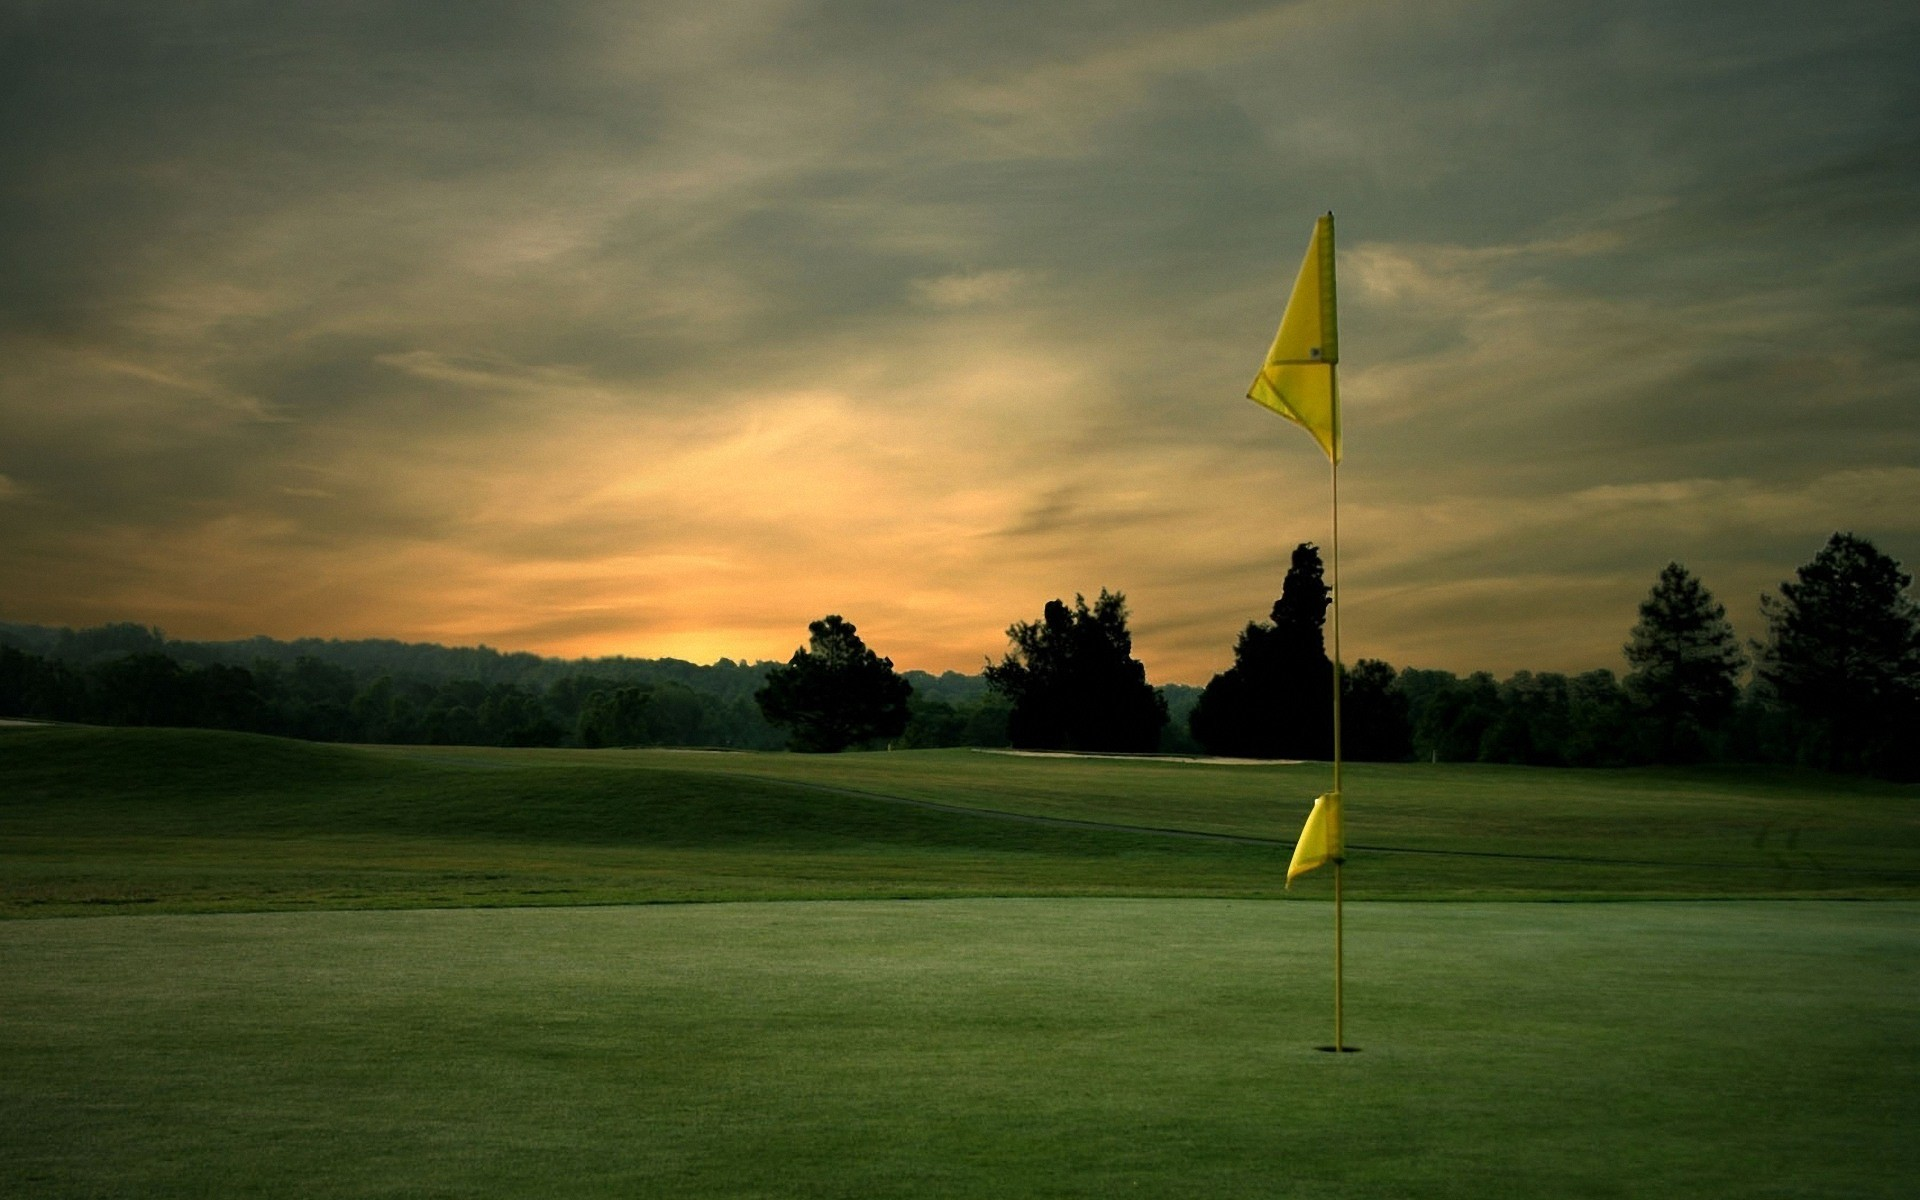 1920x1080 Hd Golf Wallpapers 66 Images